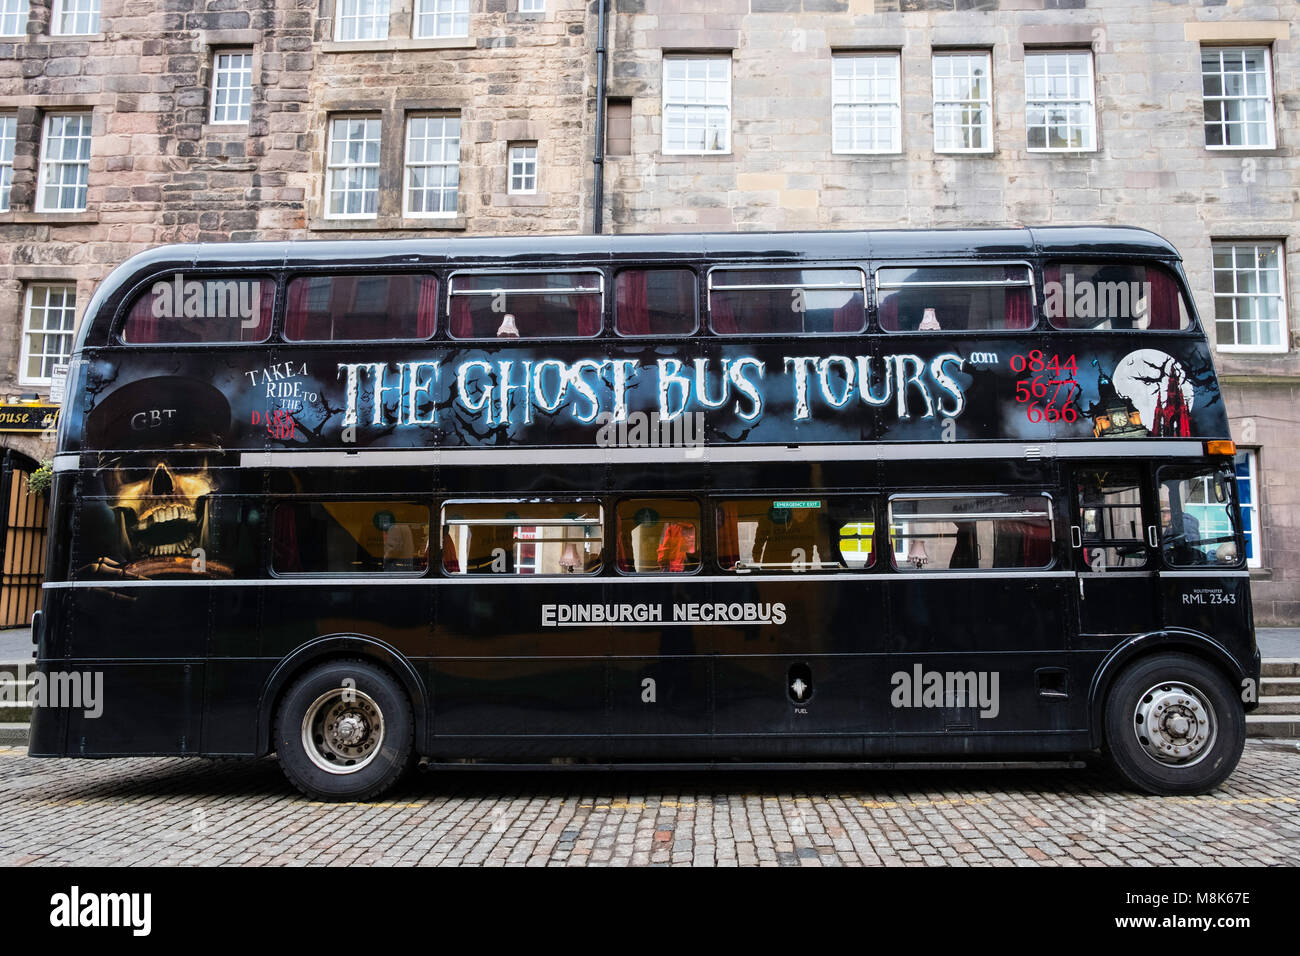 The Ghost Bus Tours double decker bus on the Royal Mile in Edinburgh, Scotland, United Kingdom Stock Photo